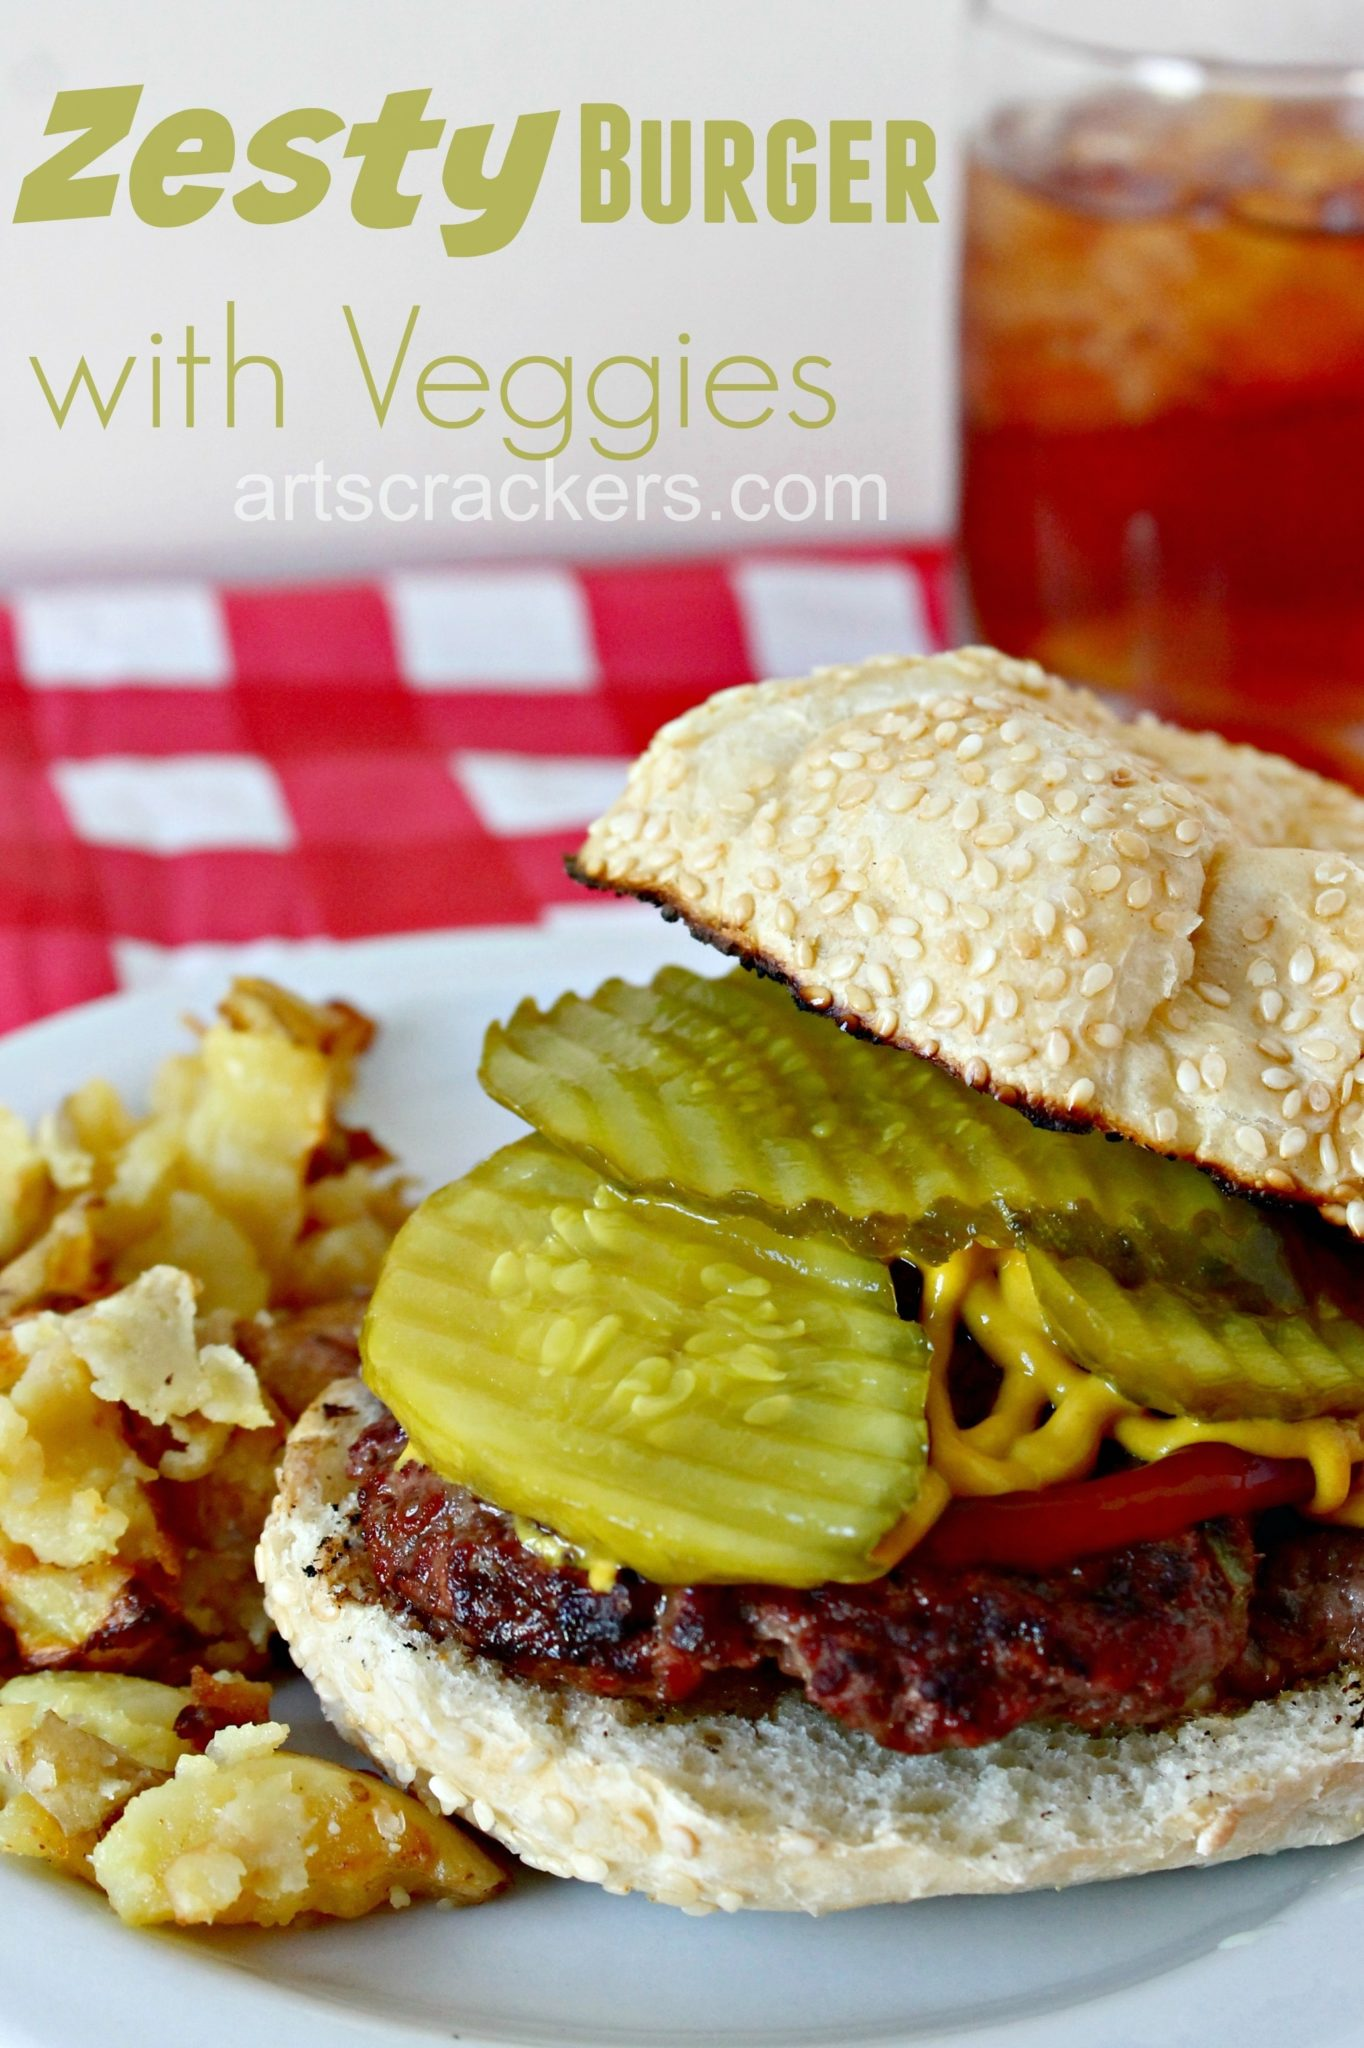 Delicious Zesty Burger with Veggies. Click the picture to get the recipe.